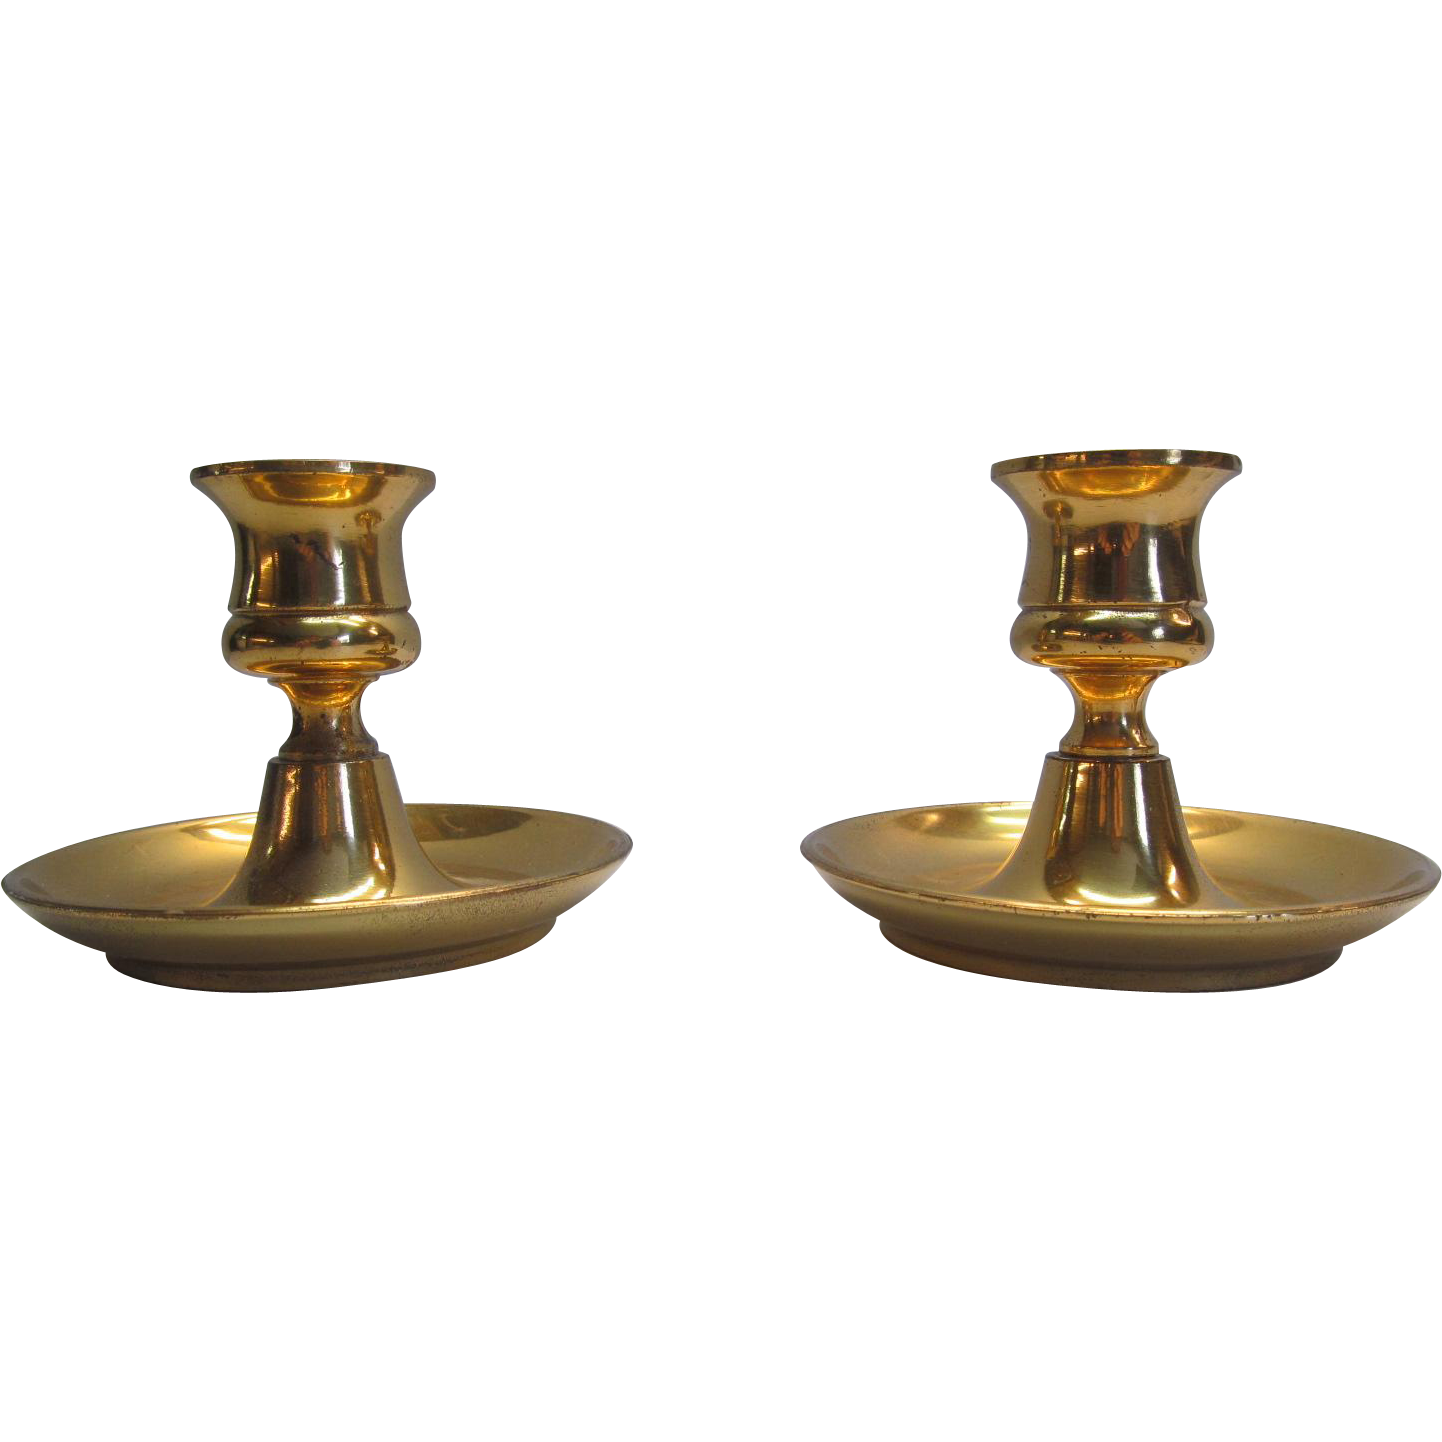 dating english brass candlestick Brass candlesticks --- trying to find help with dating news: wow antique-shop i came across this short kovels video on dating brass candlesticks that i think.